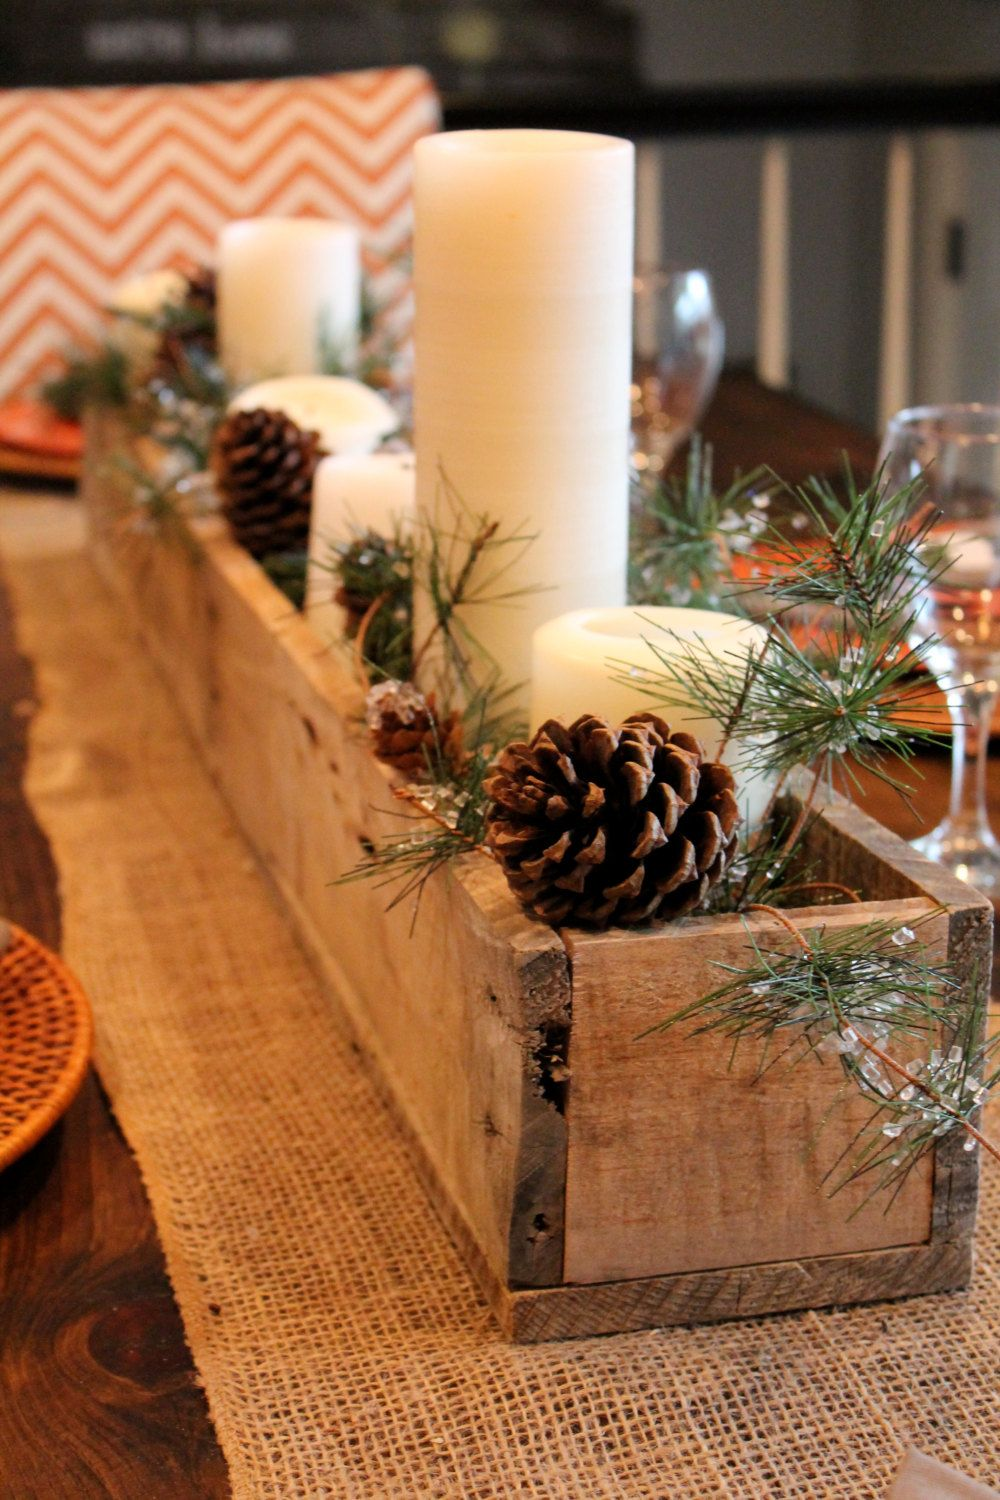 rustic pallet wood centerpiece box by lennyandjennydesigns on etsy love the way its decorated - Wooden Box Christmas Decorations